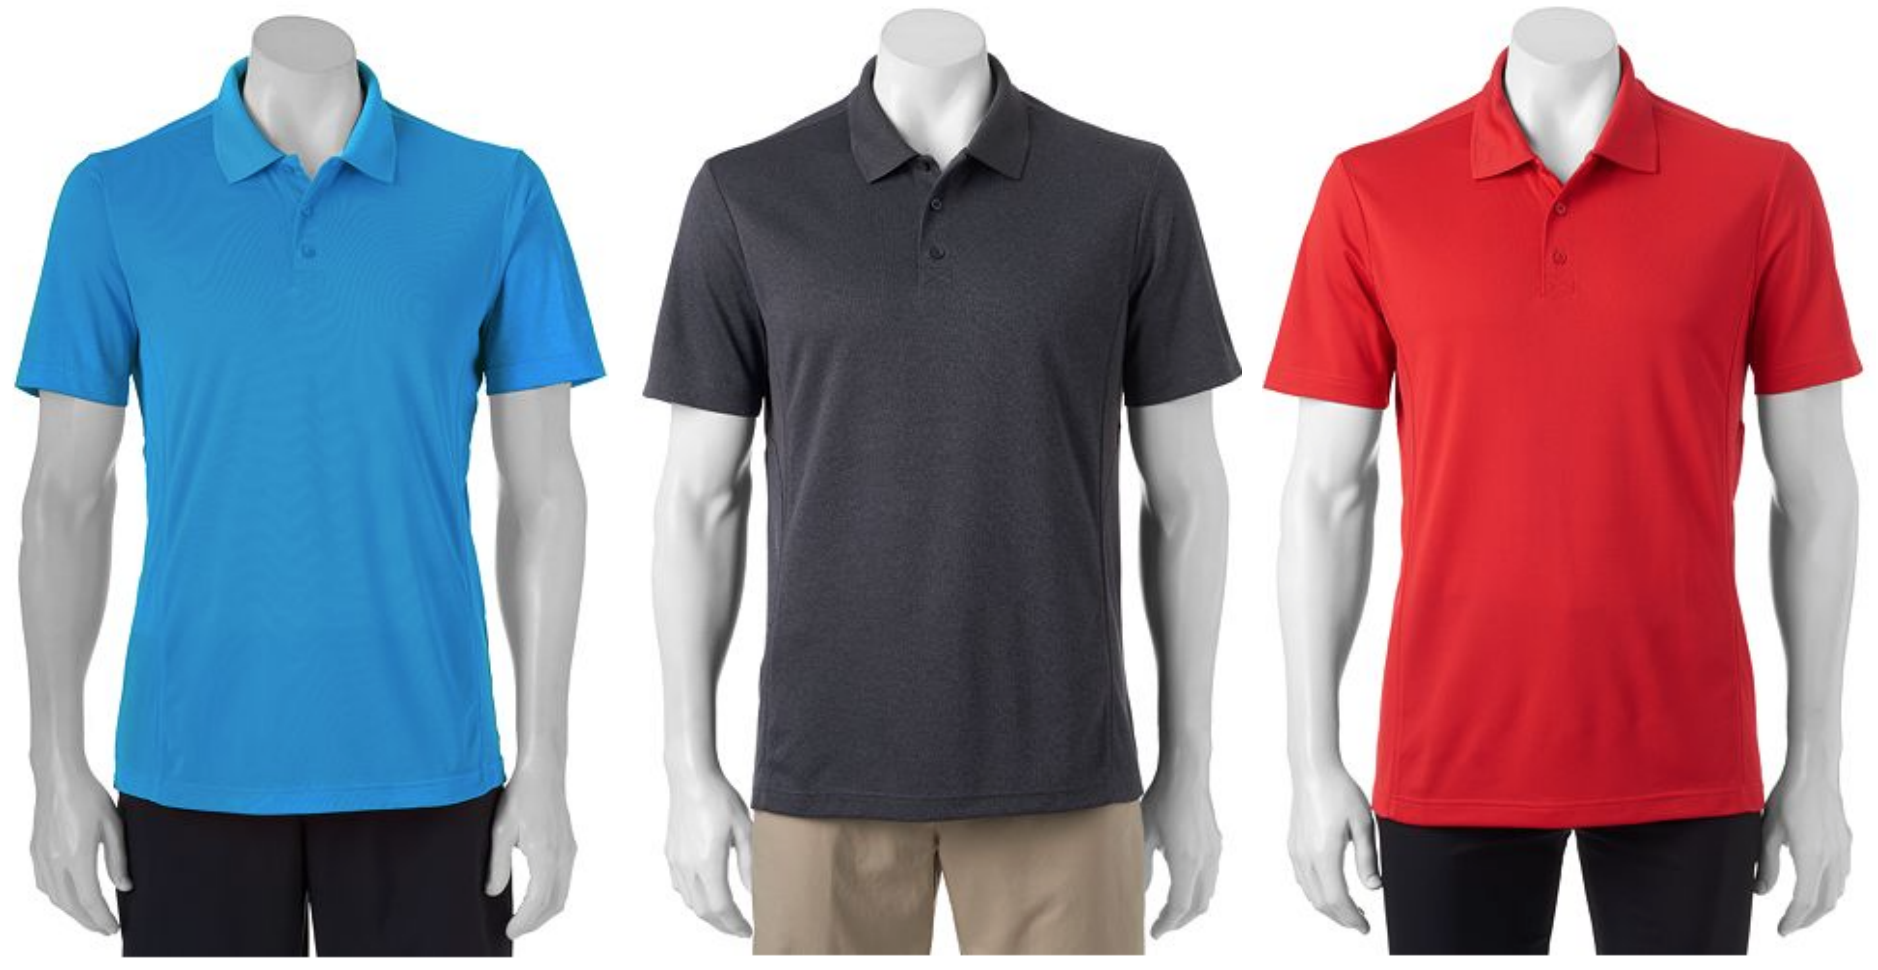 ae0503439 Kohl's: Men's Fila Sport Golf Shirts $7.33 (+ Great Deals on ...